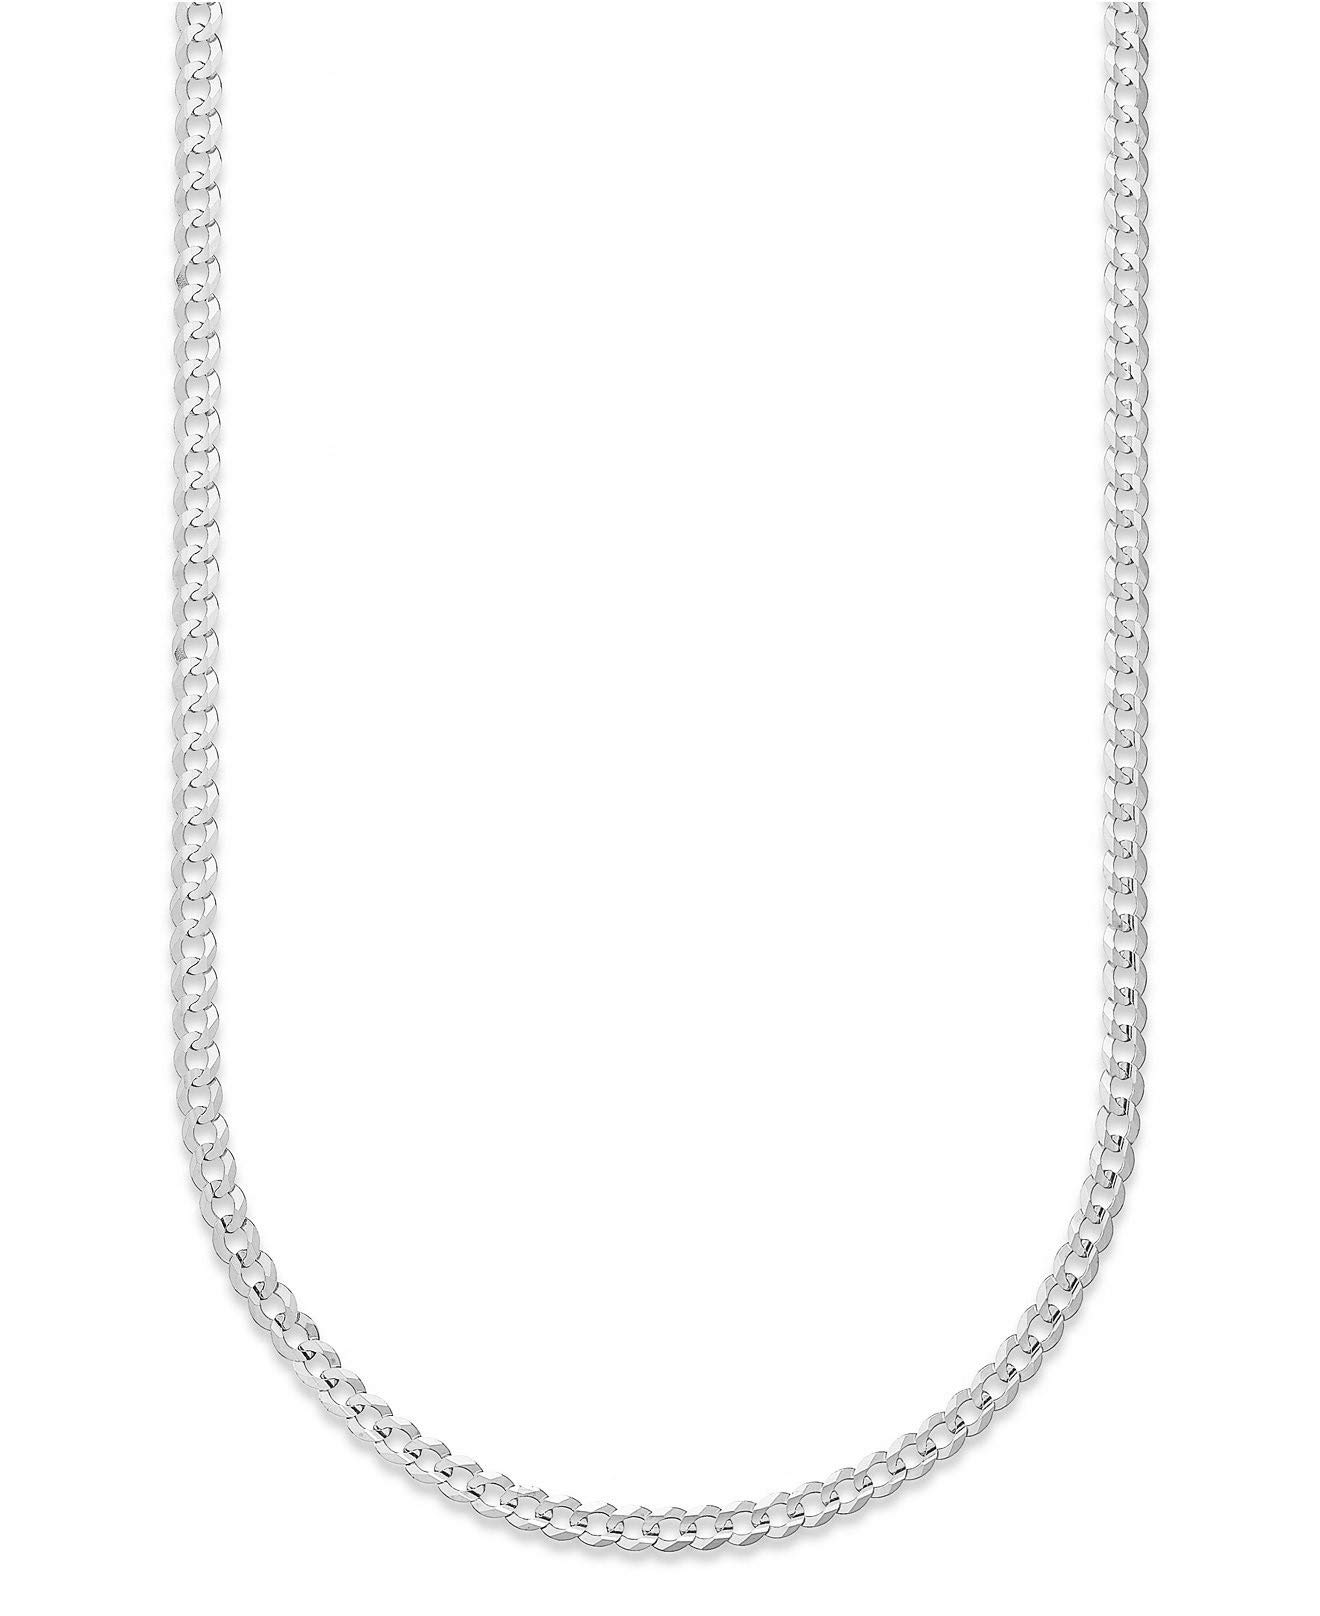 14K Gold 3.5MM Cuban/Curb Link Chain Necklace- Made in Italy- Multiple Lengths available-Yellow, White Or Rose Gold (White, 22)